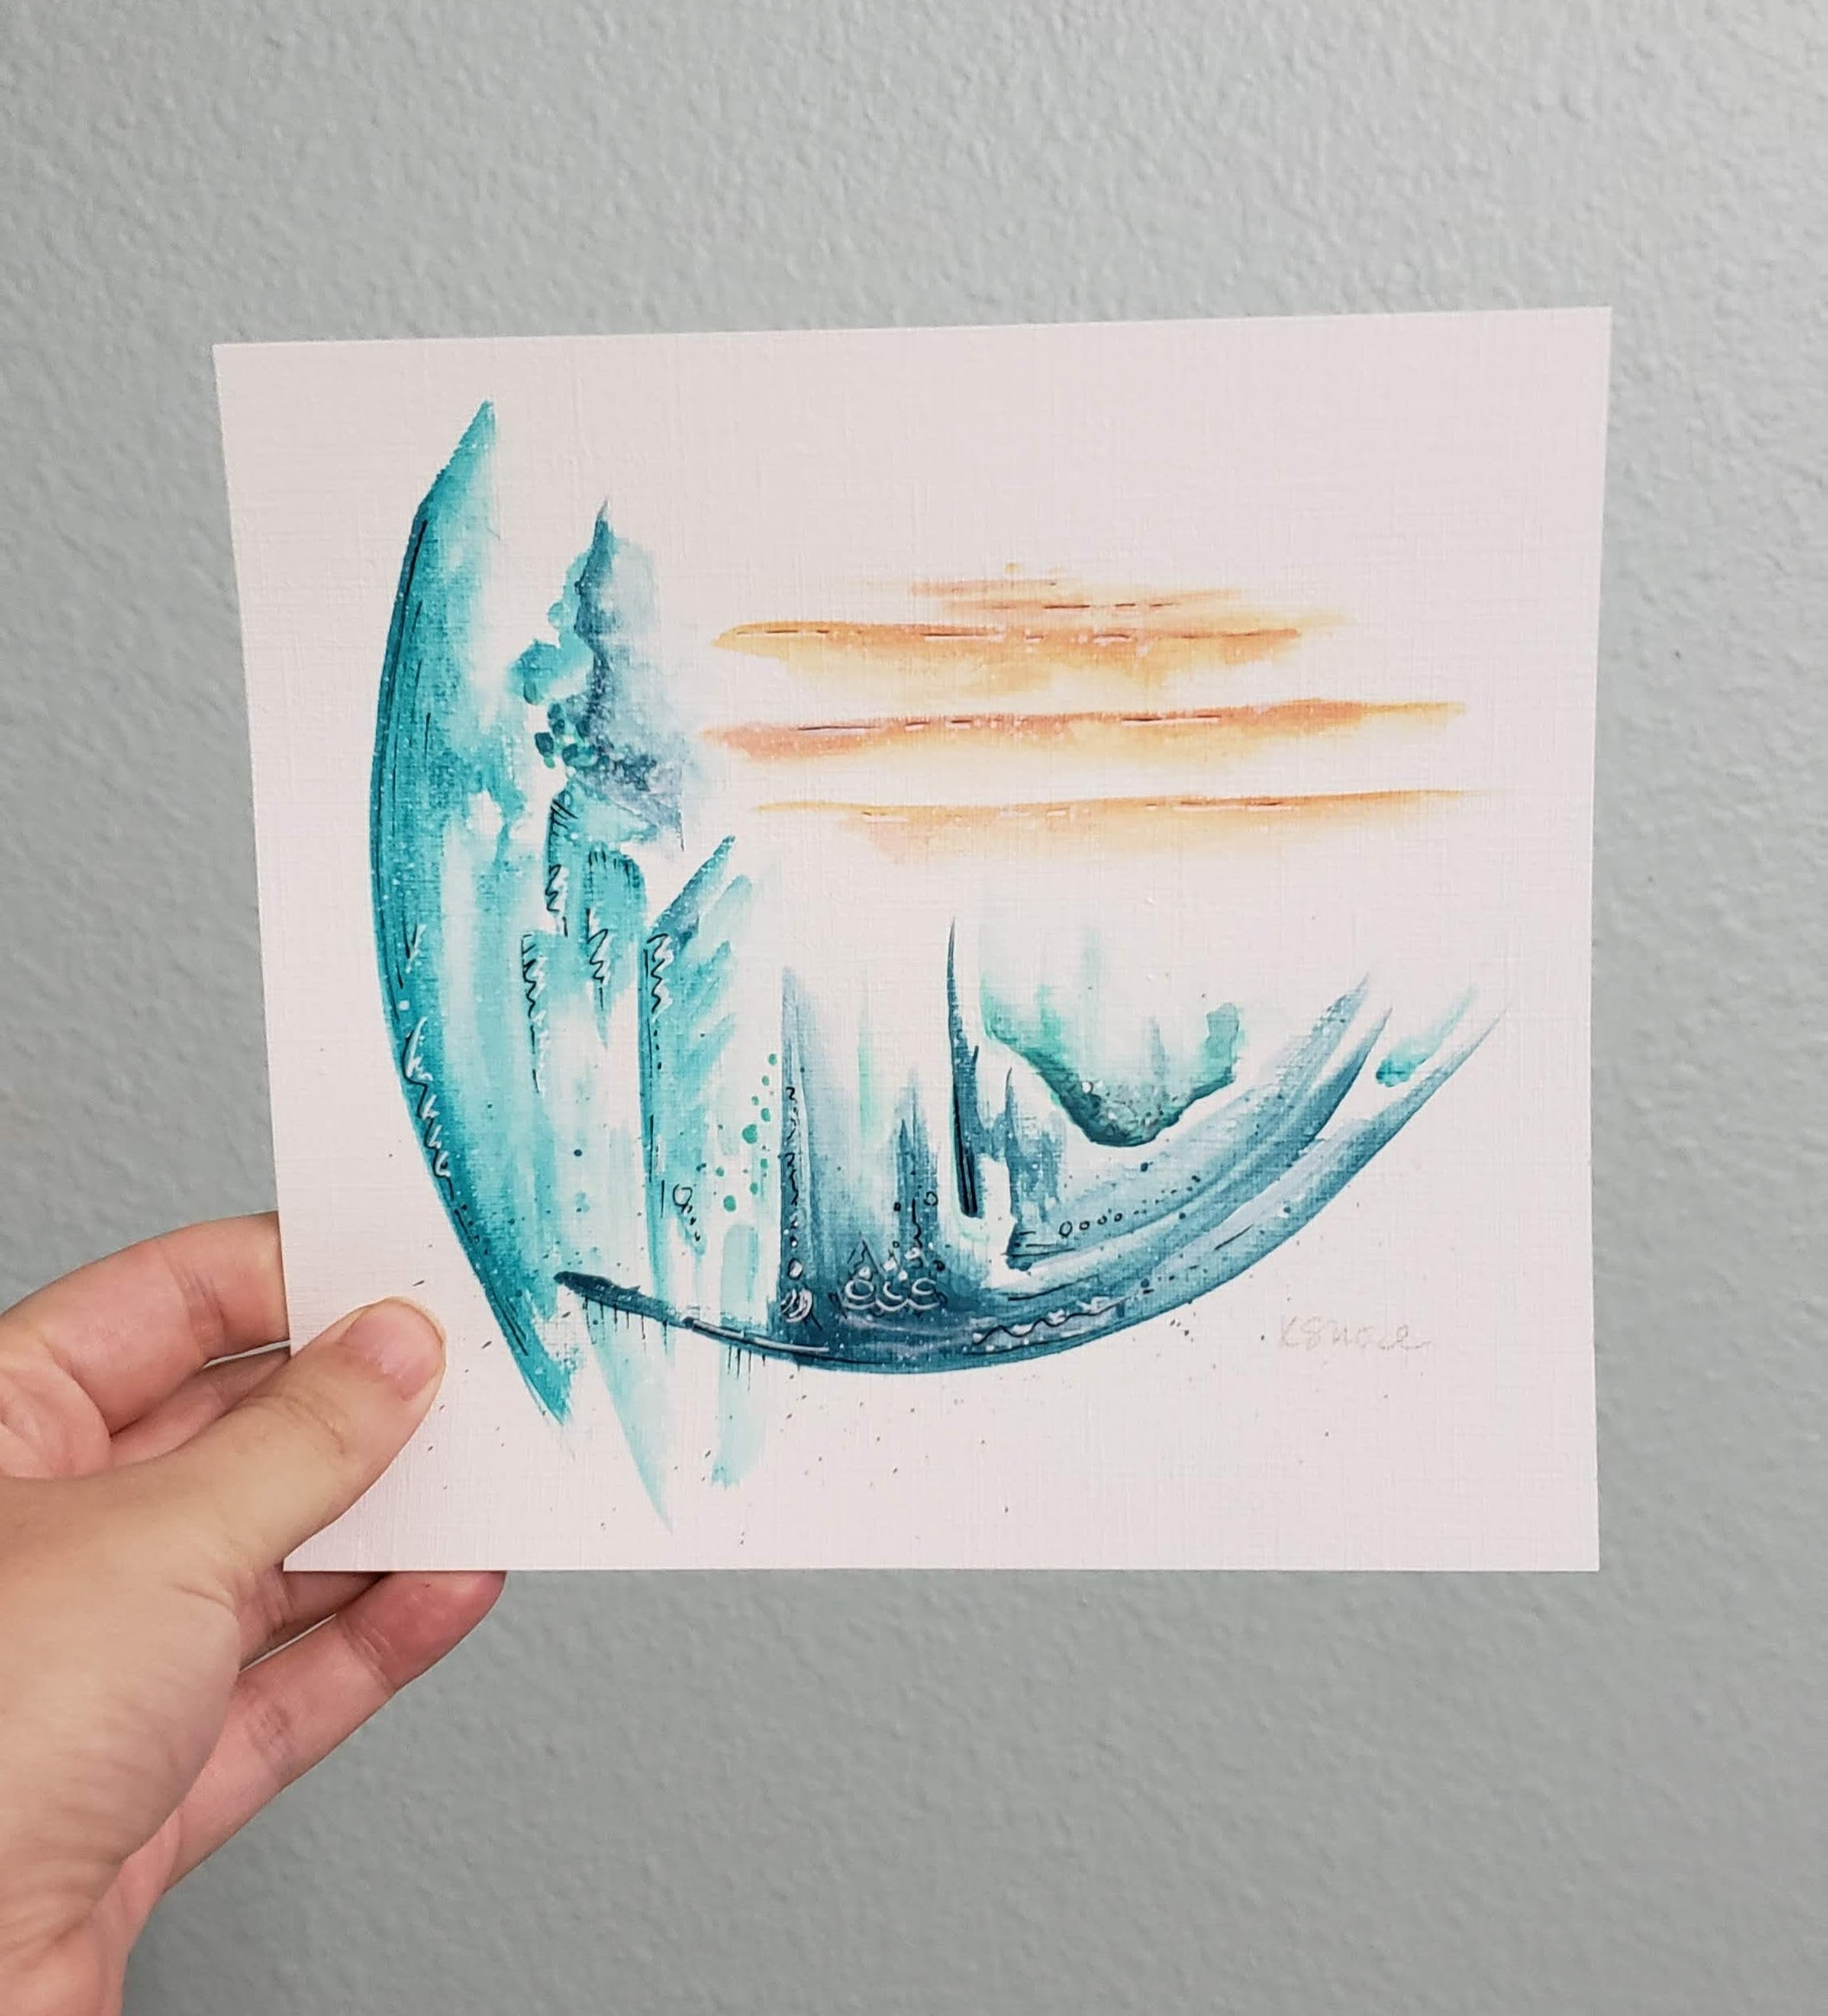 Original Abstract Painting on Paper | 100 Day Project - Day 1